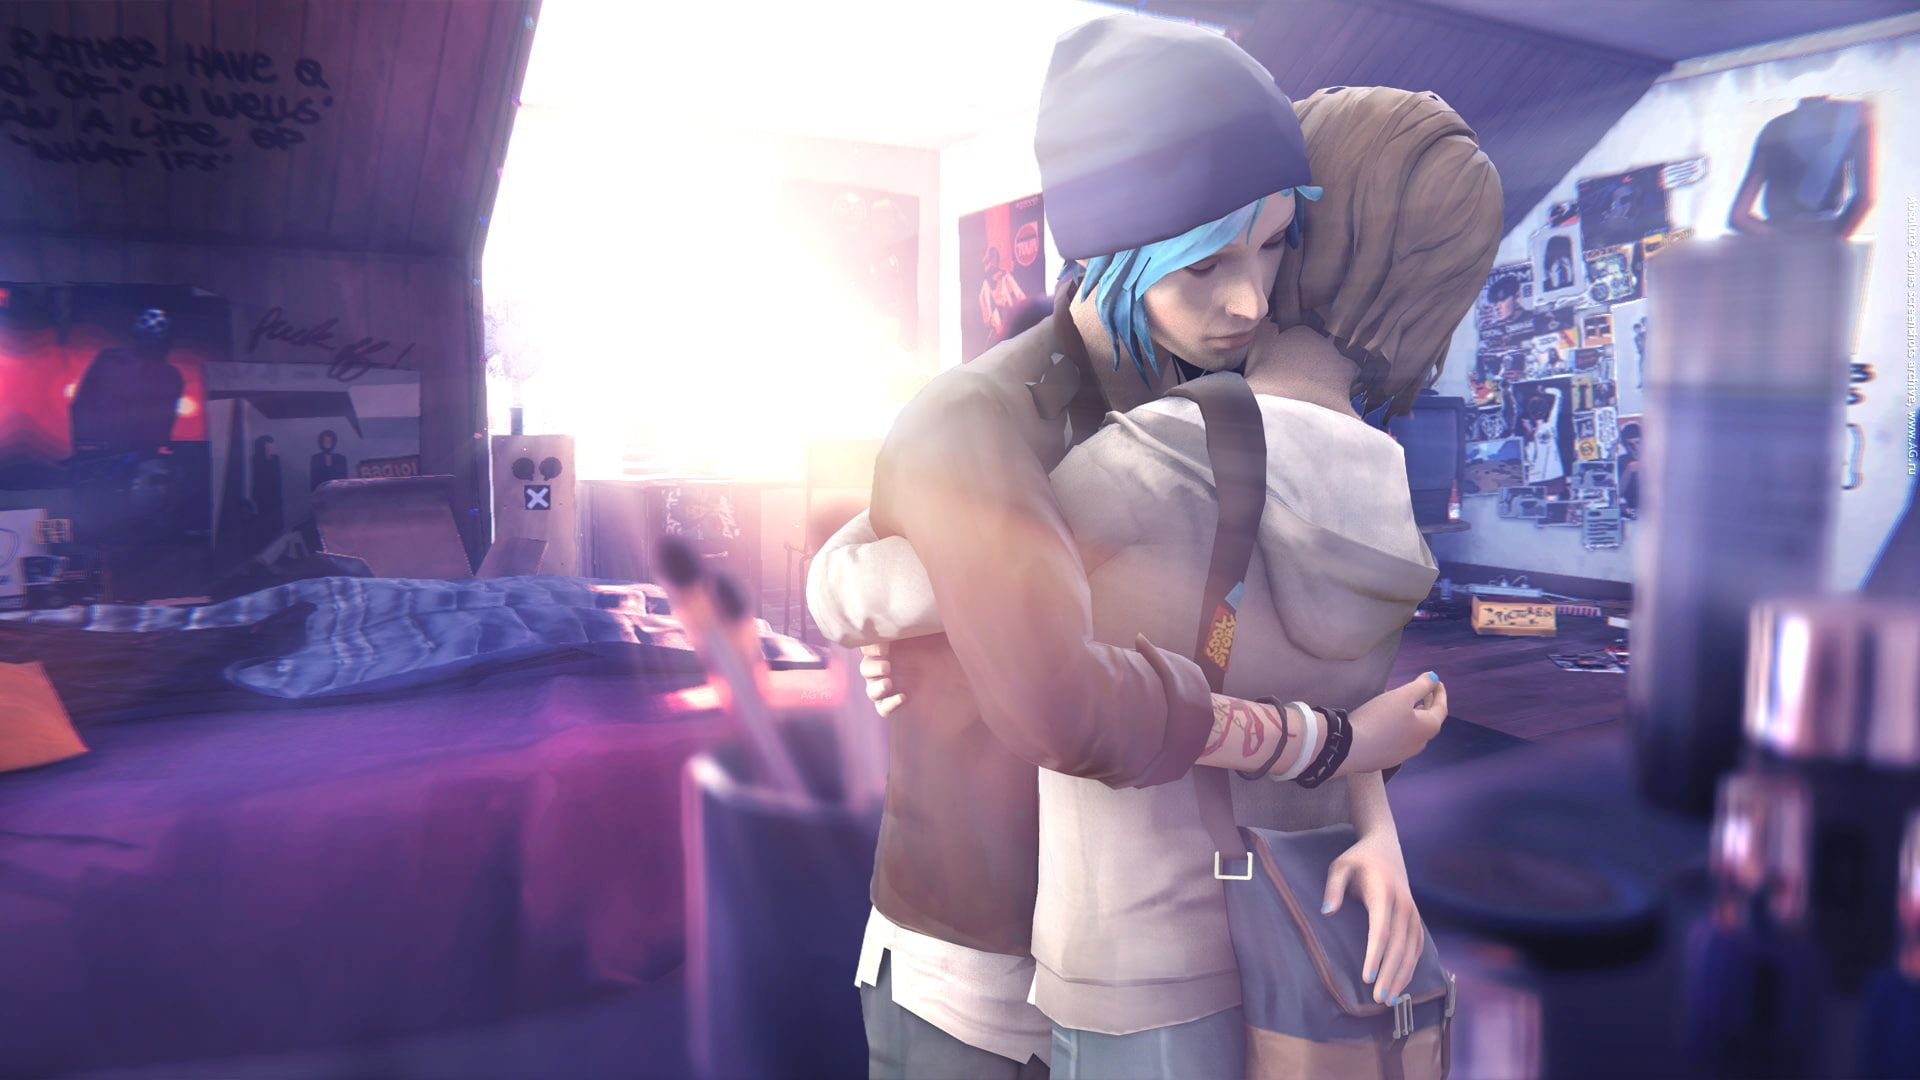 Life Is Strange Max Caulfield Chloe Price 1080p Wallpaper Hdwallpaper Desktop Life Is Strange Life Is Strange Wallpaper Mac Computer